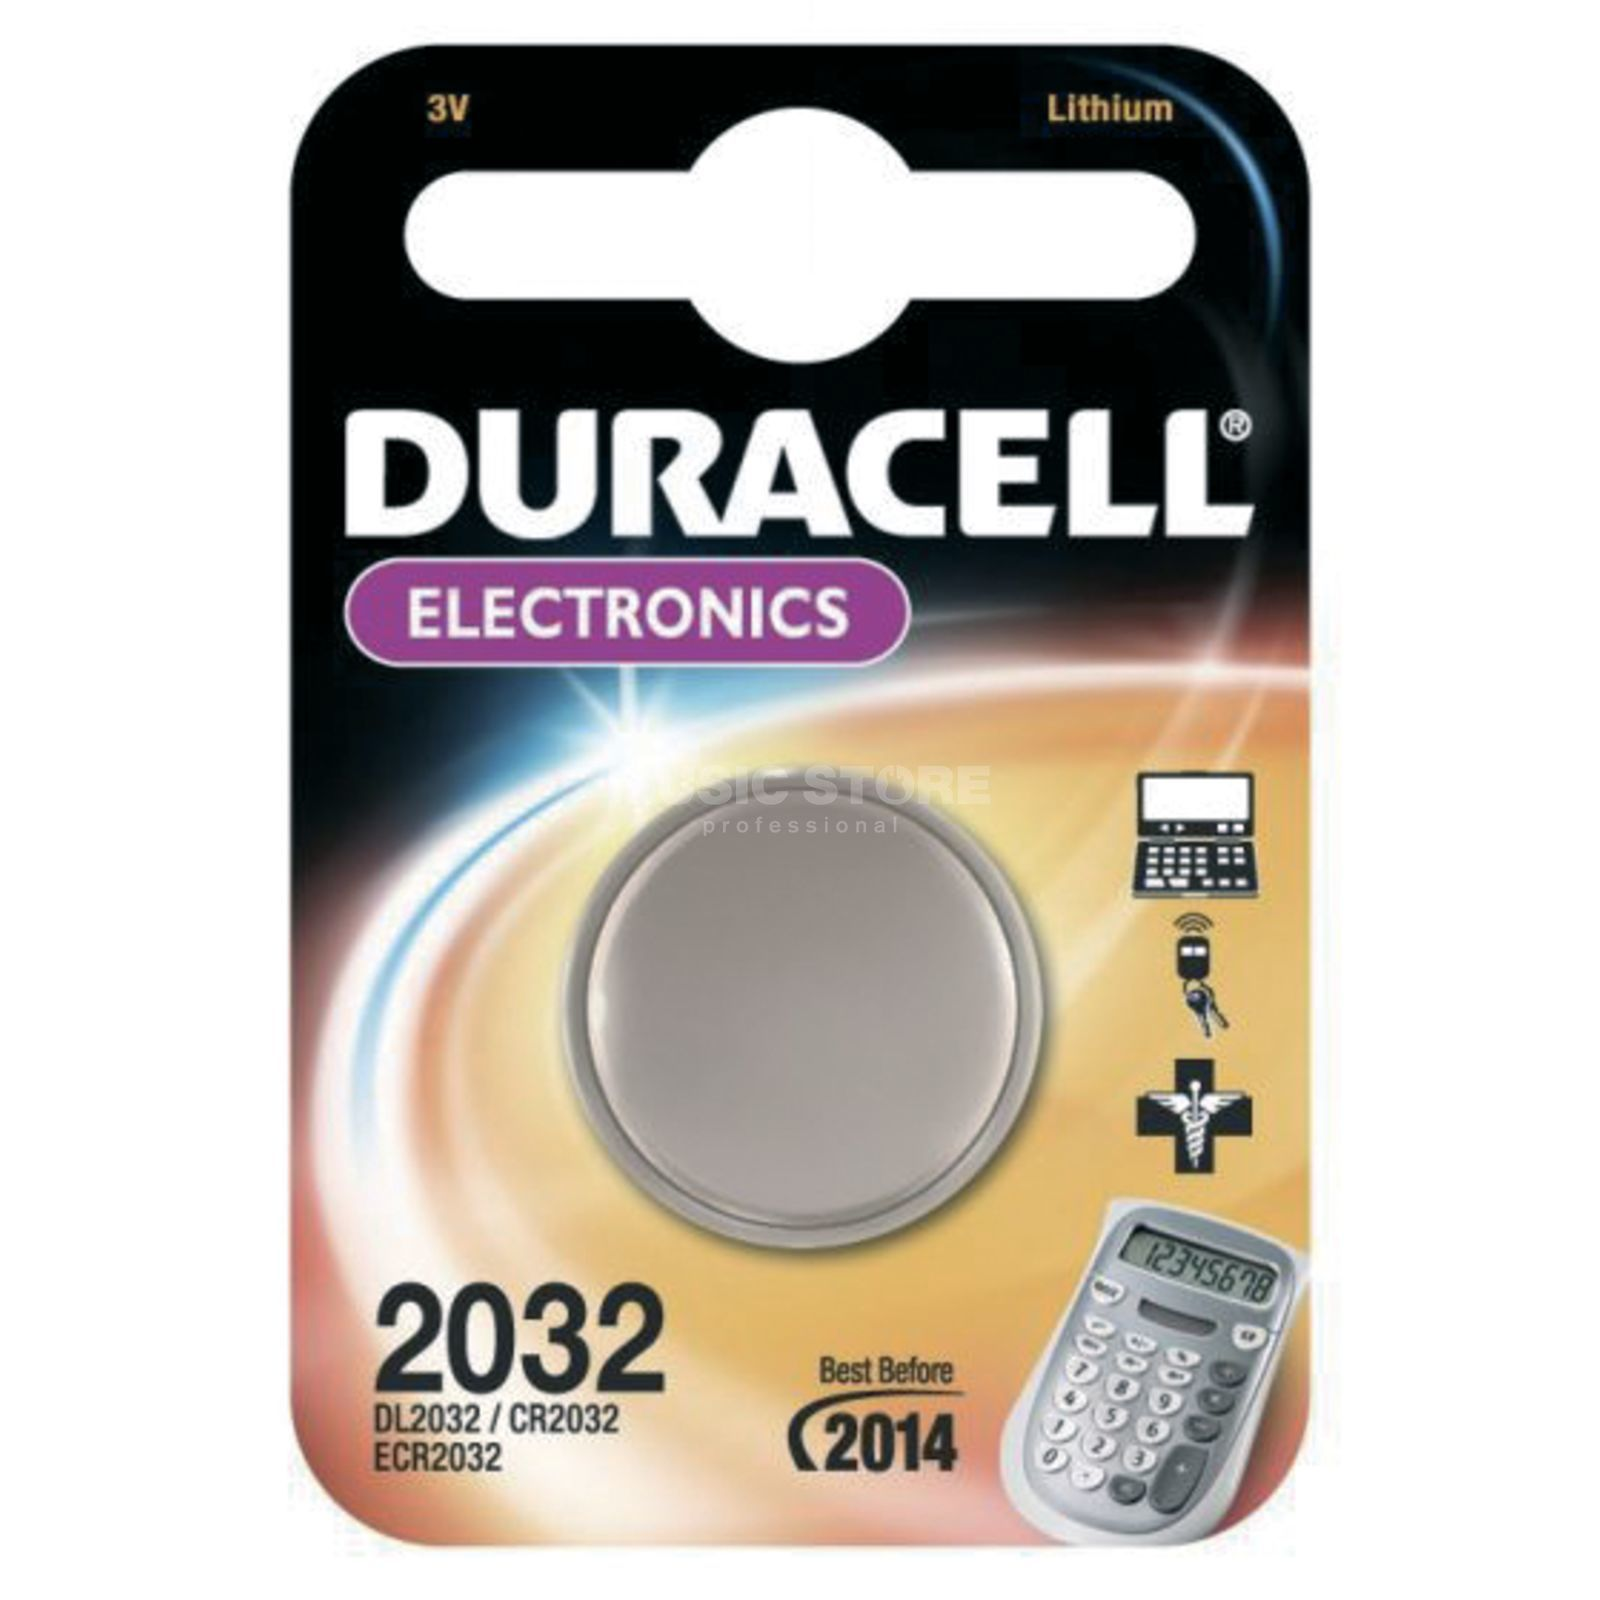 Duracell CR2032 1 Button Cell, 3V, Lithium Produktbillede